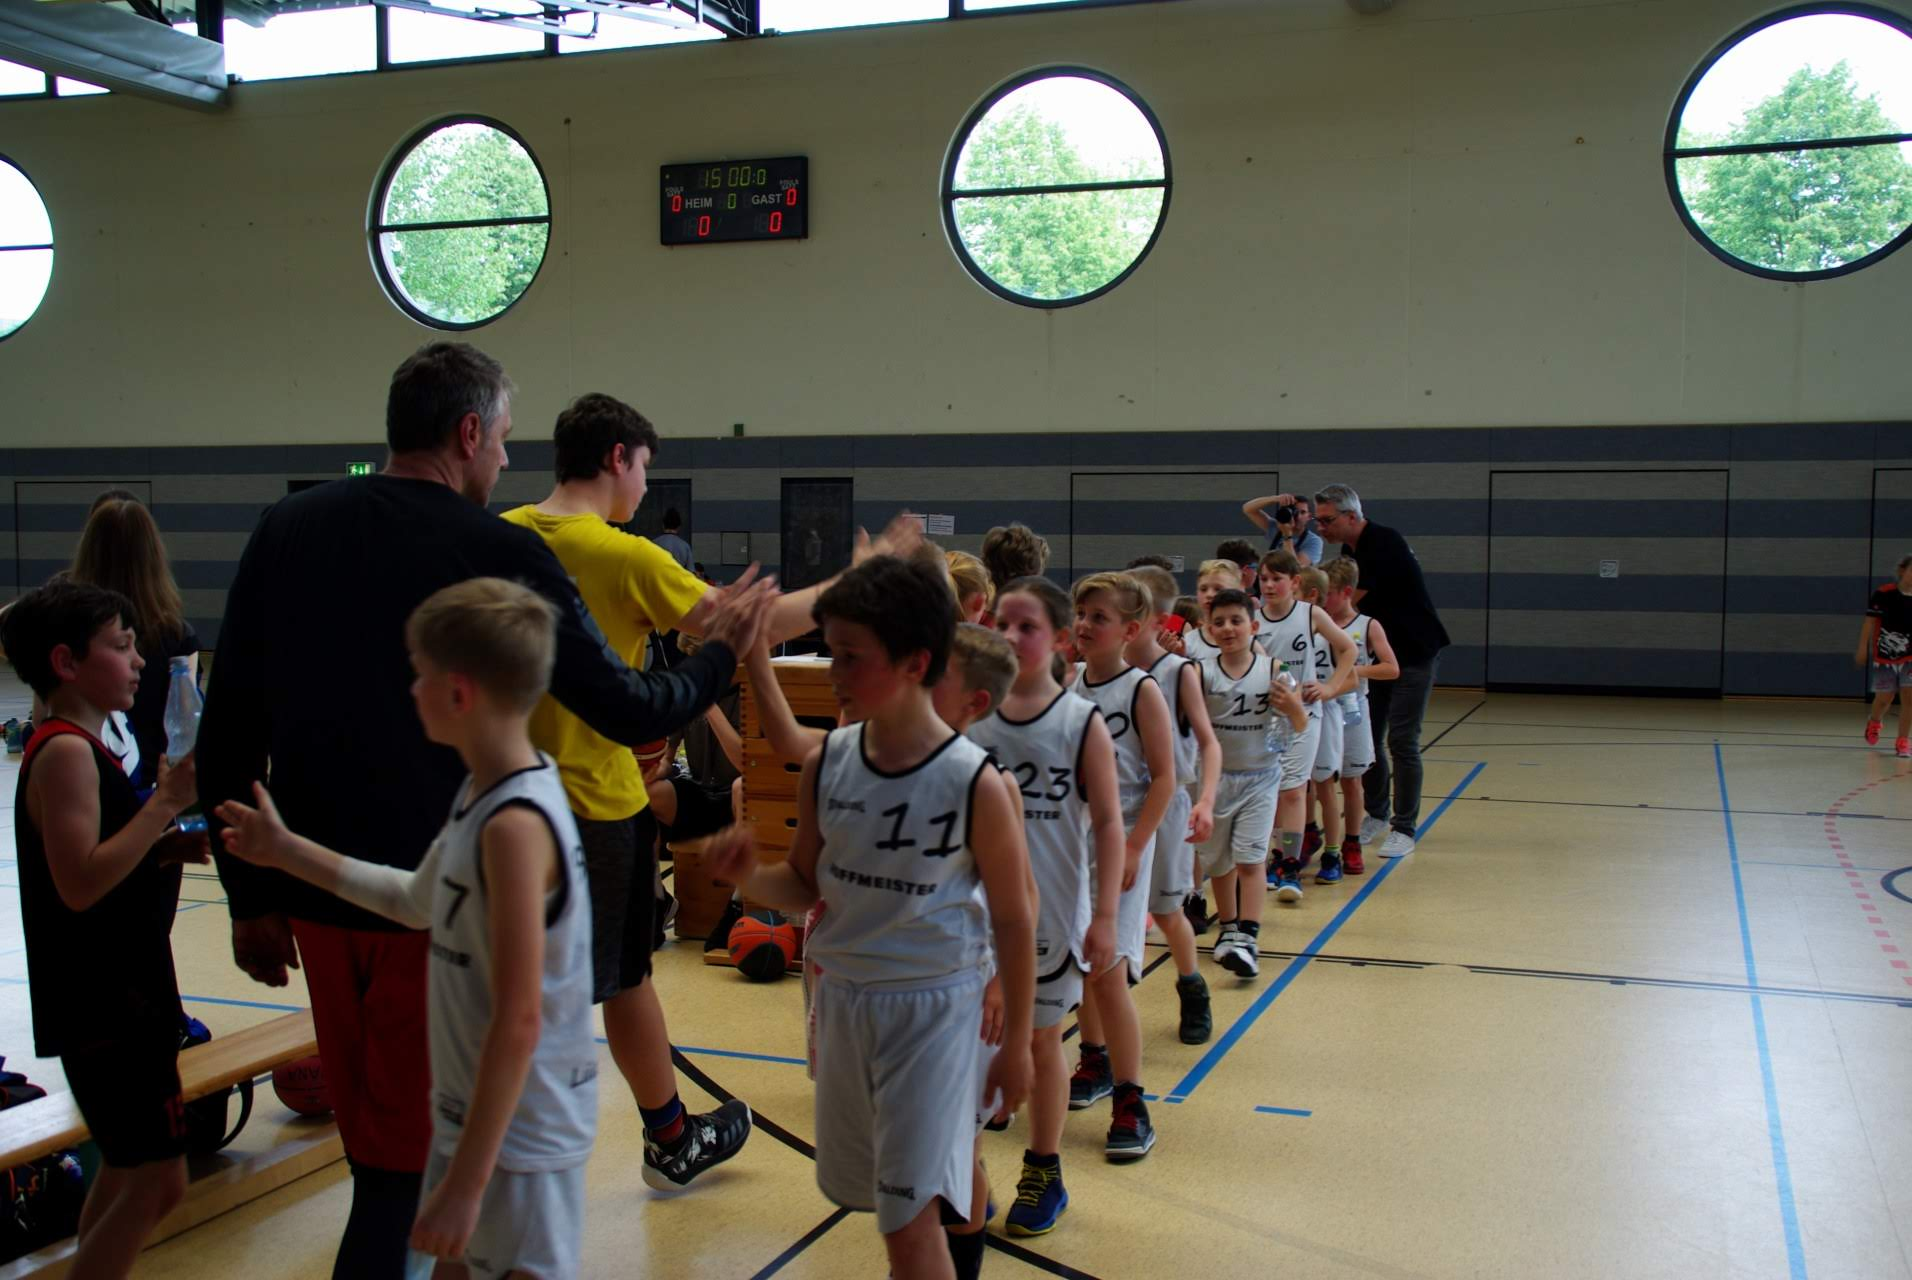 Baskets on tour: Die U10 und U14 in Speyer